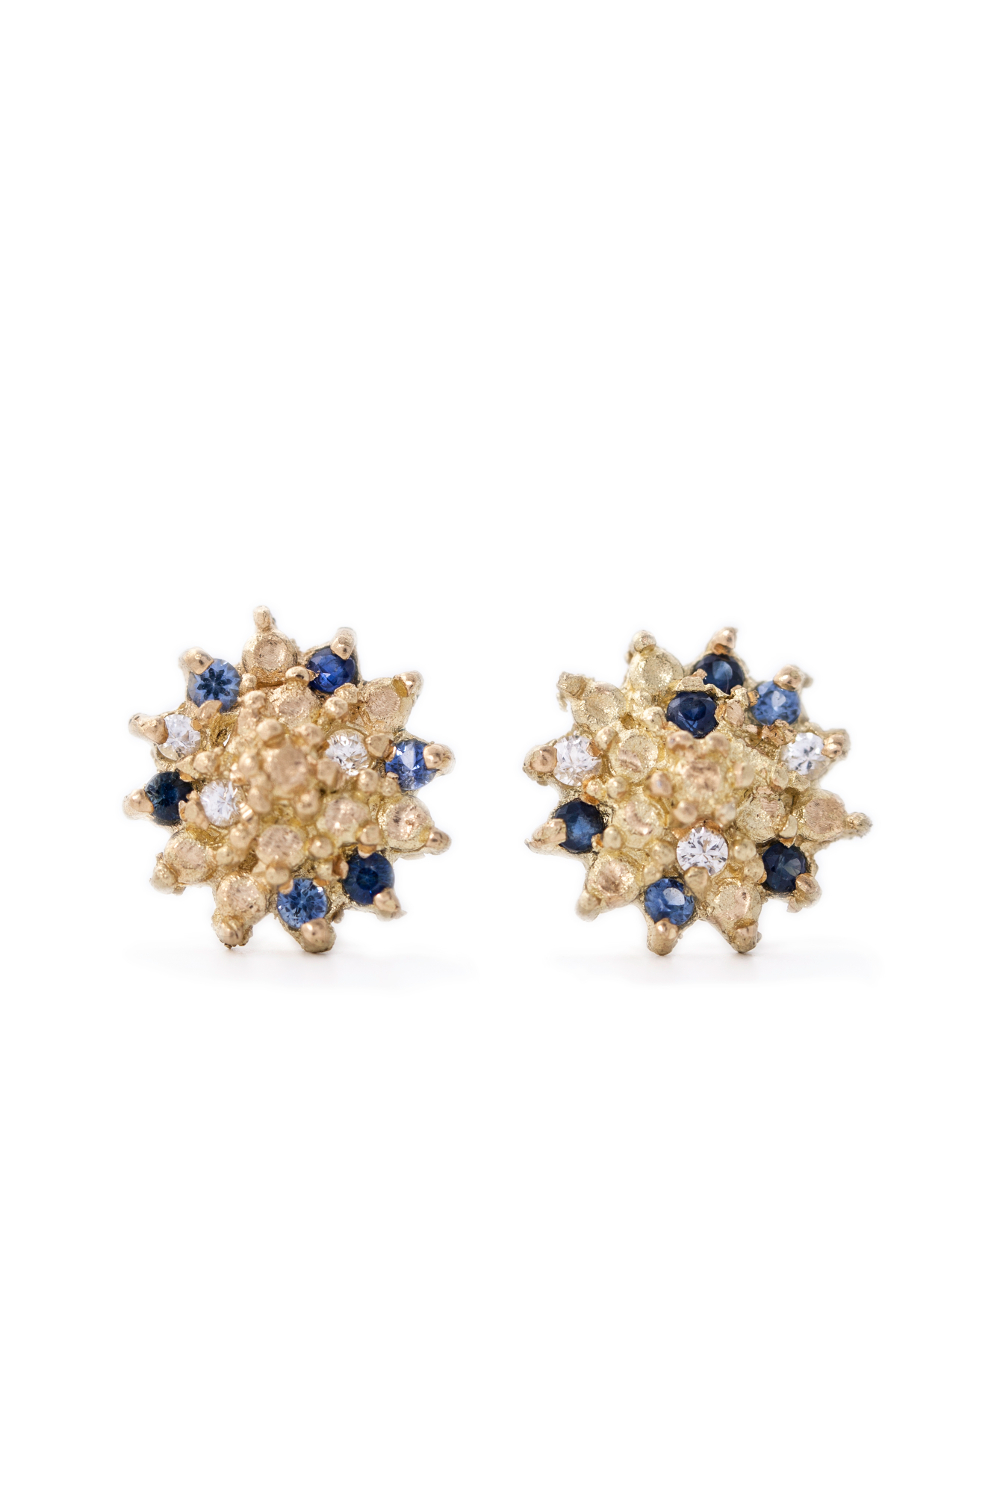 Multi coloured sapphire star studs in yellow gold